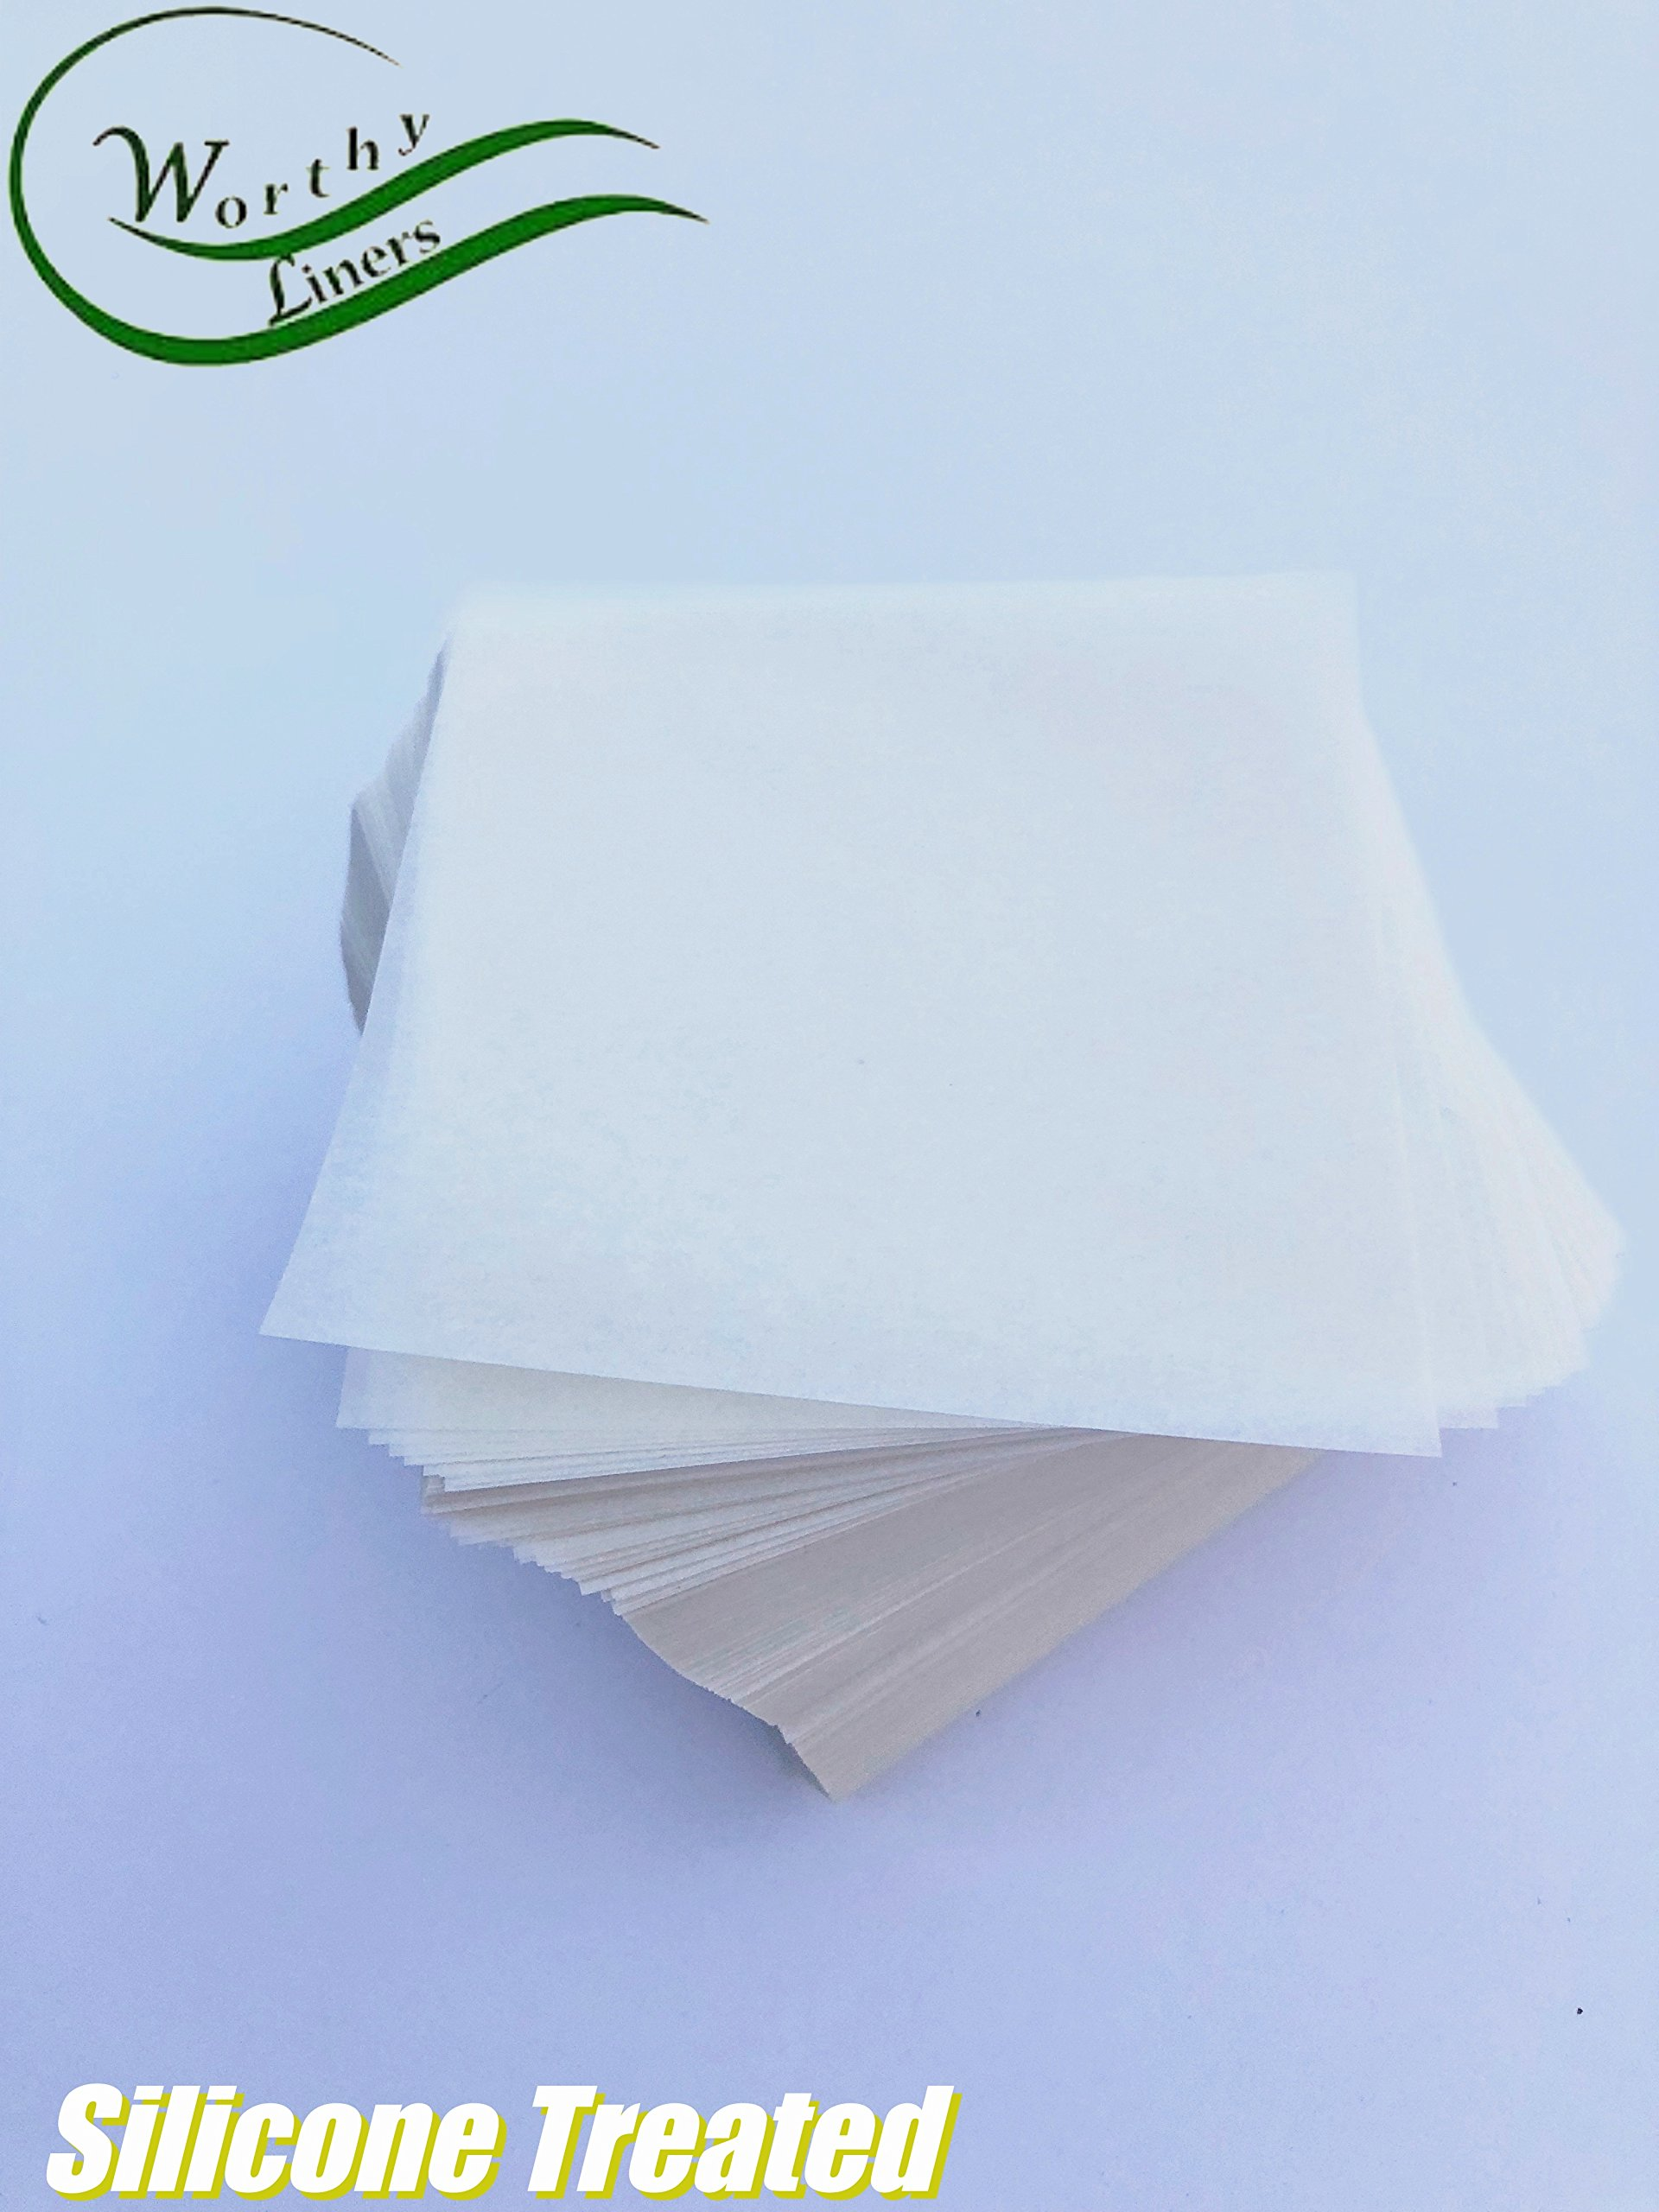 Worthy Liners Silicone Treated Parchment Paper Squares 1000 Pieces (6x6) by Worthy Liners (Image #1)